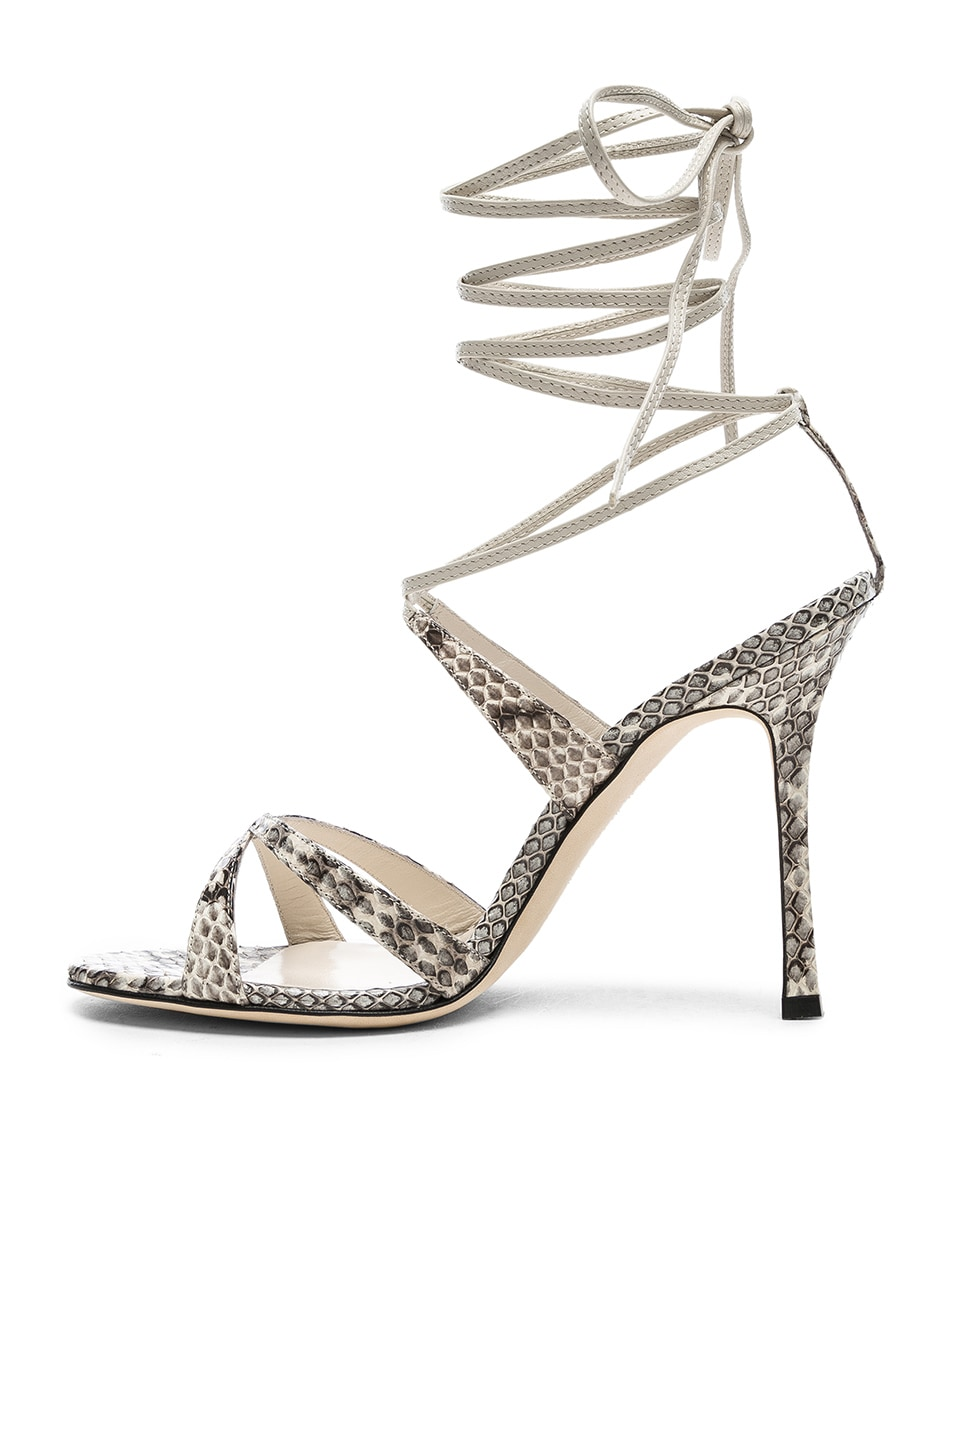 Image 5 of Manolo Blahnik Criss 105 Sandals in Black & White Natural Watersnake